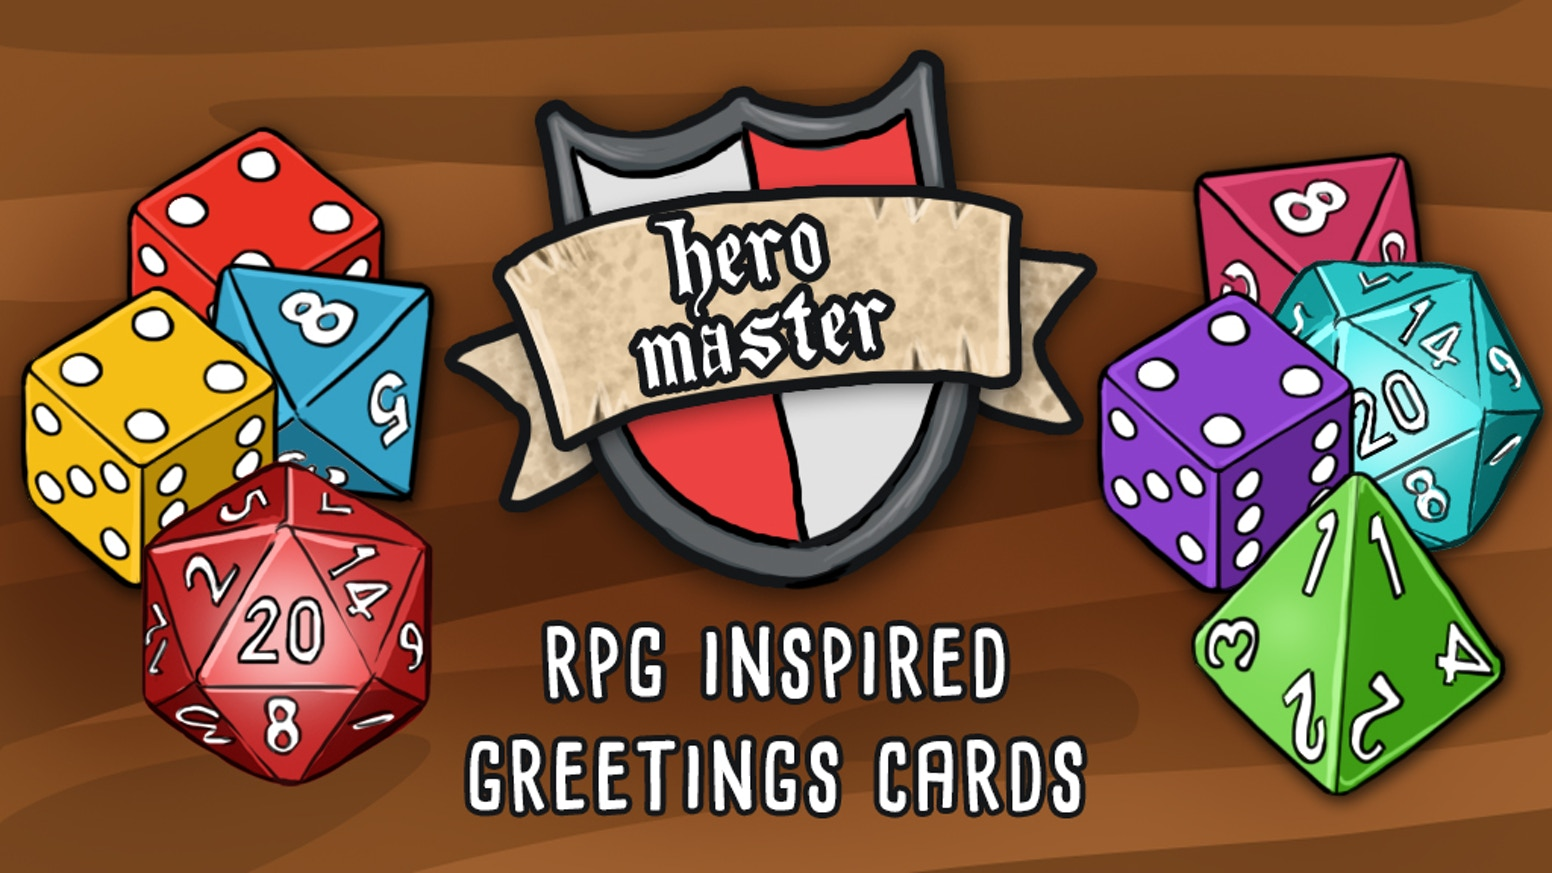 Hero master fantasy game and rpg humour greetings cards by jamie looking for that perfect card for your gaming group humorous greetings cards for fantasy fans m4hsunfo